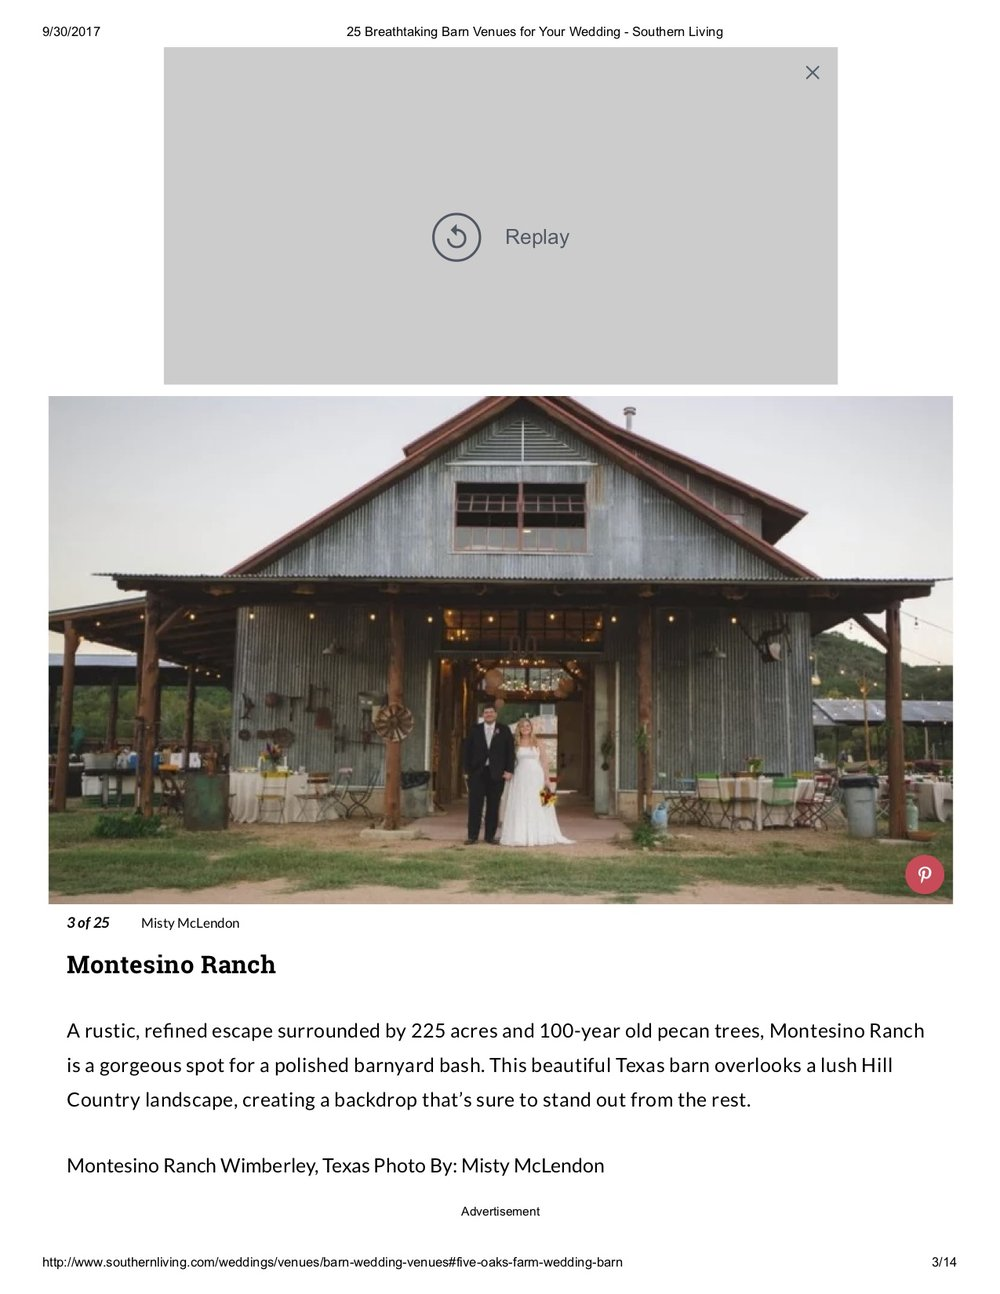 3.25 Breathtaking Barn Venues for Your Wedding - Southern Living copy.jpg